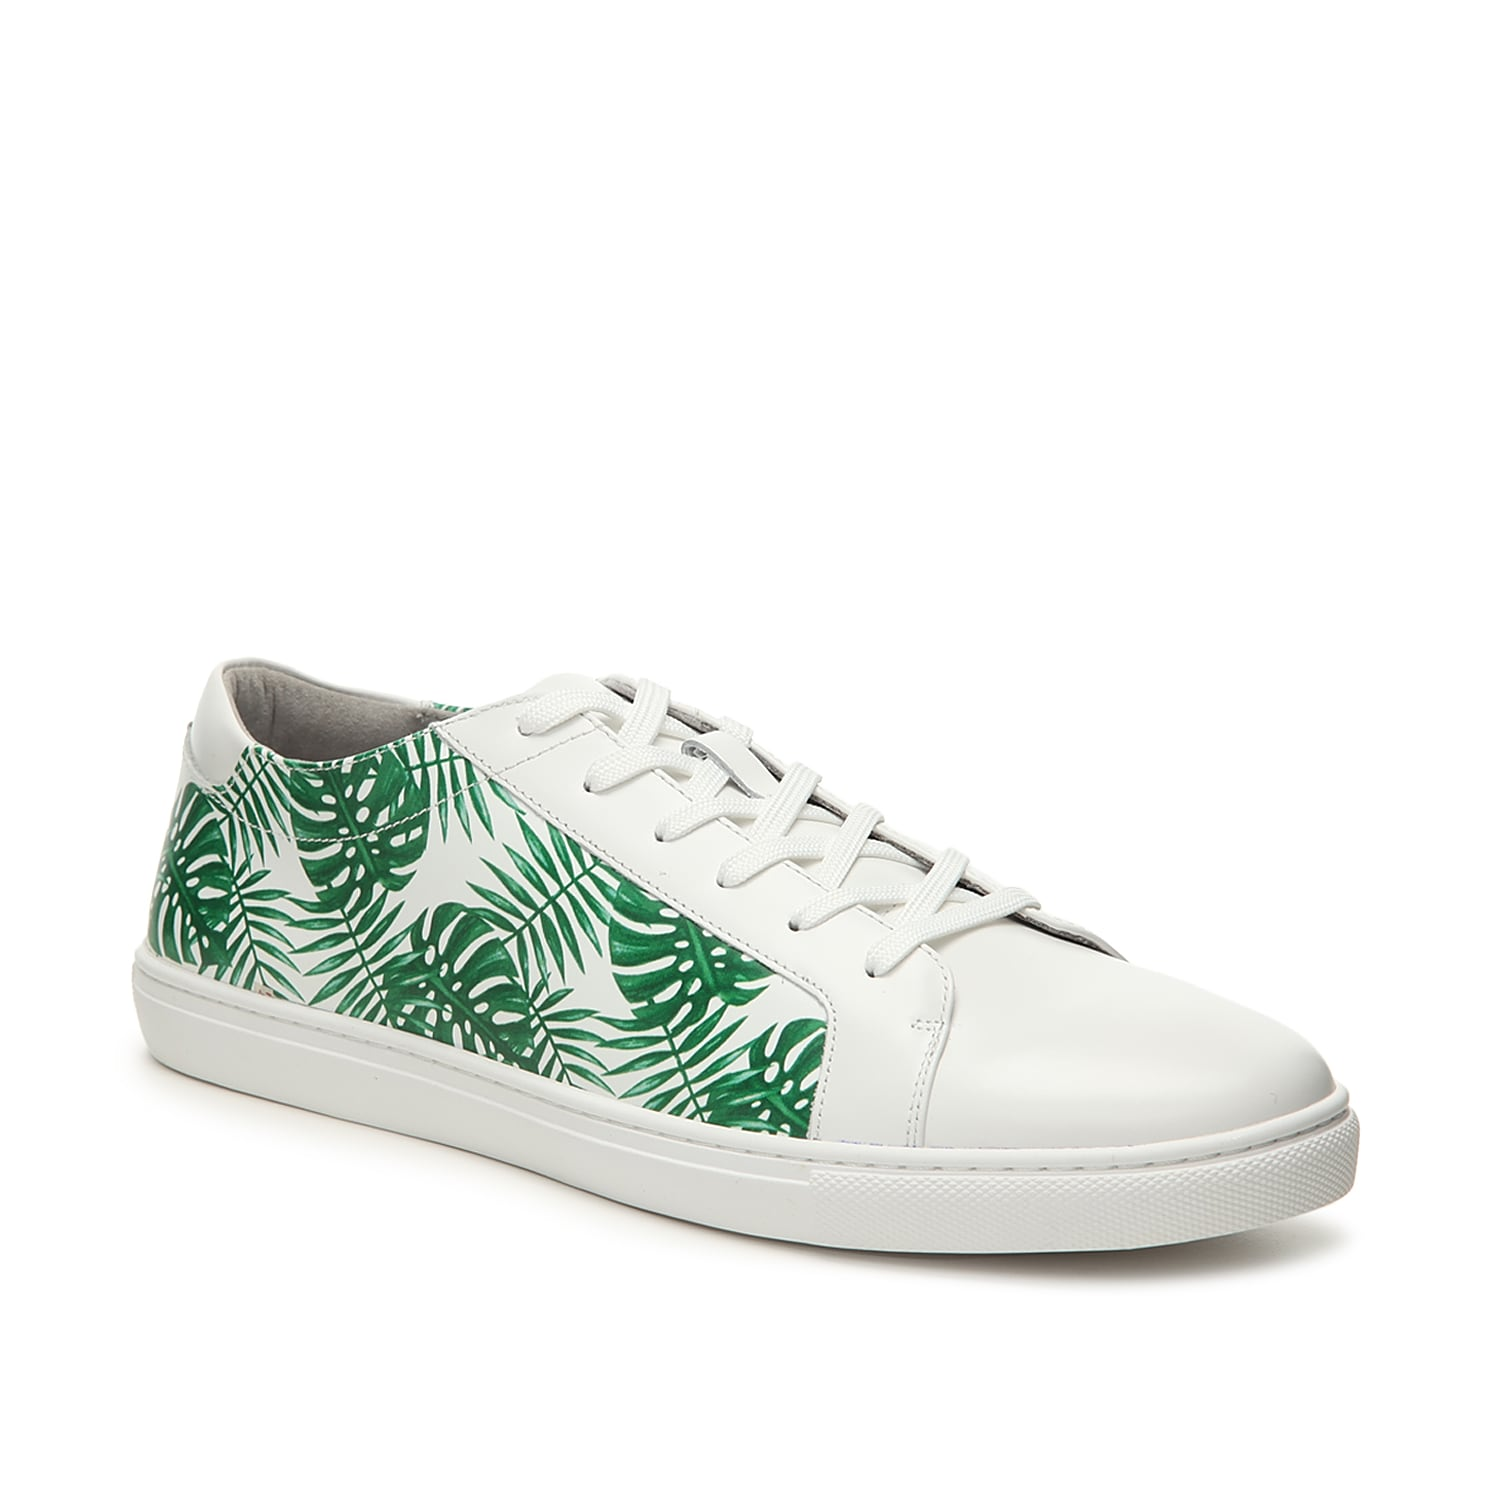 Add subtle style to your shoe collection with the Kam Leaf sneaker from Kenneth Cole New York. This low-top features a leaf printed leather finish that will go great with jeans and a bomber jacket!